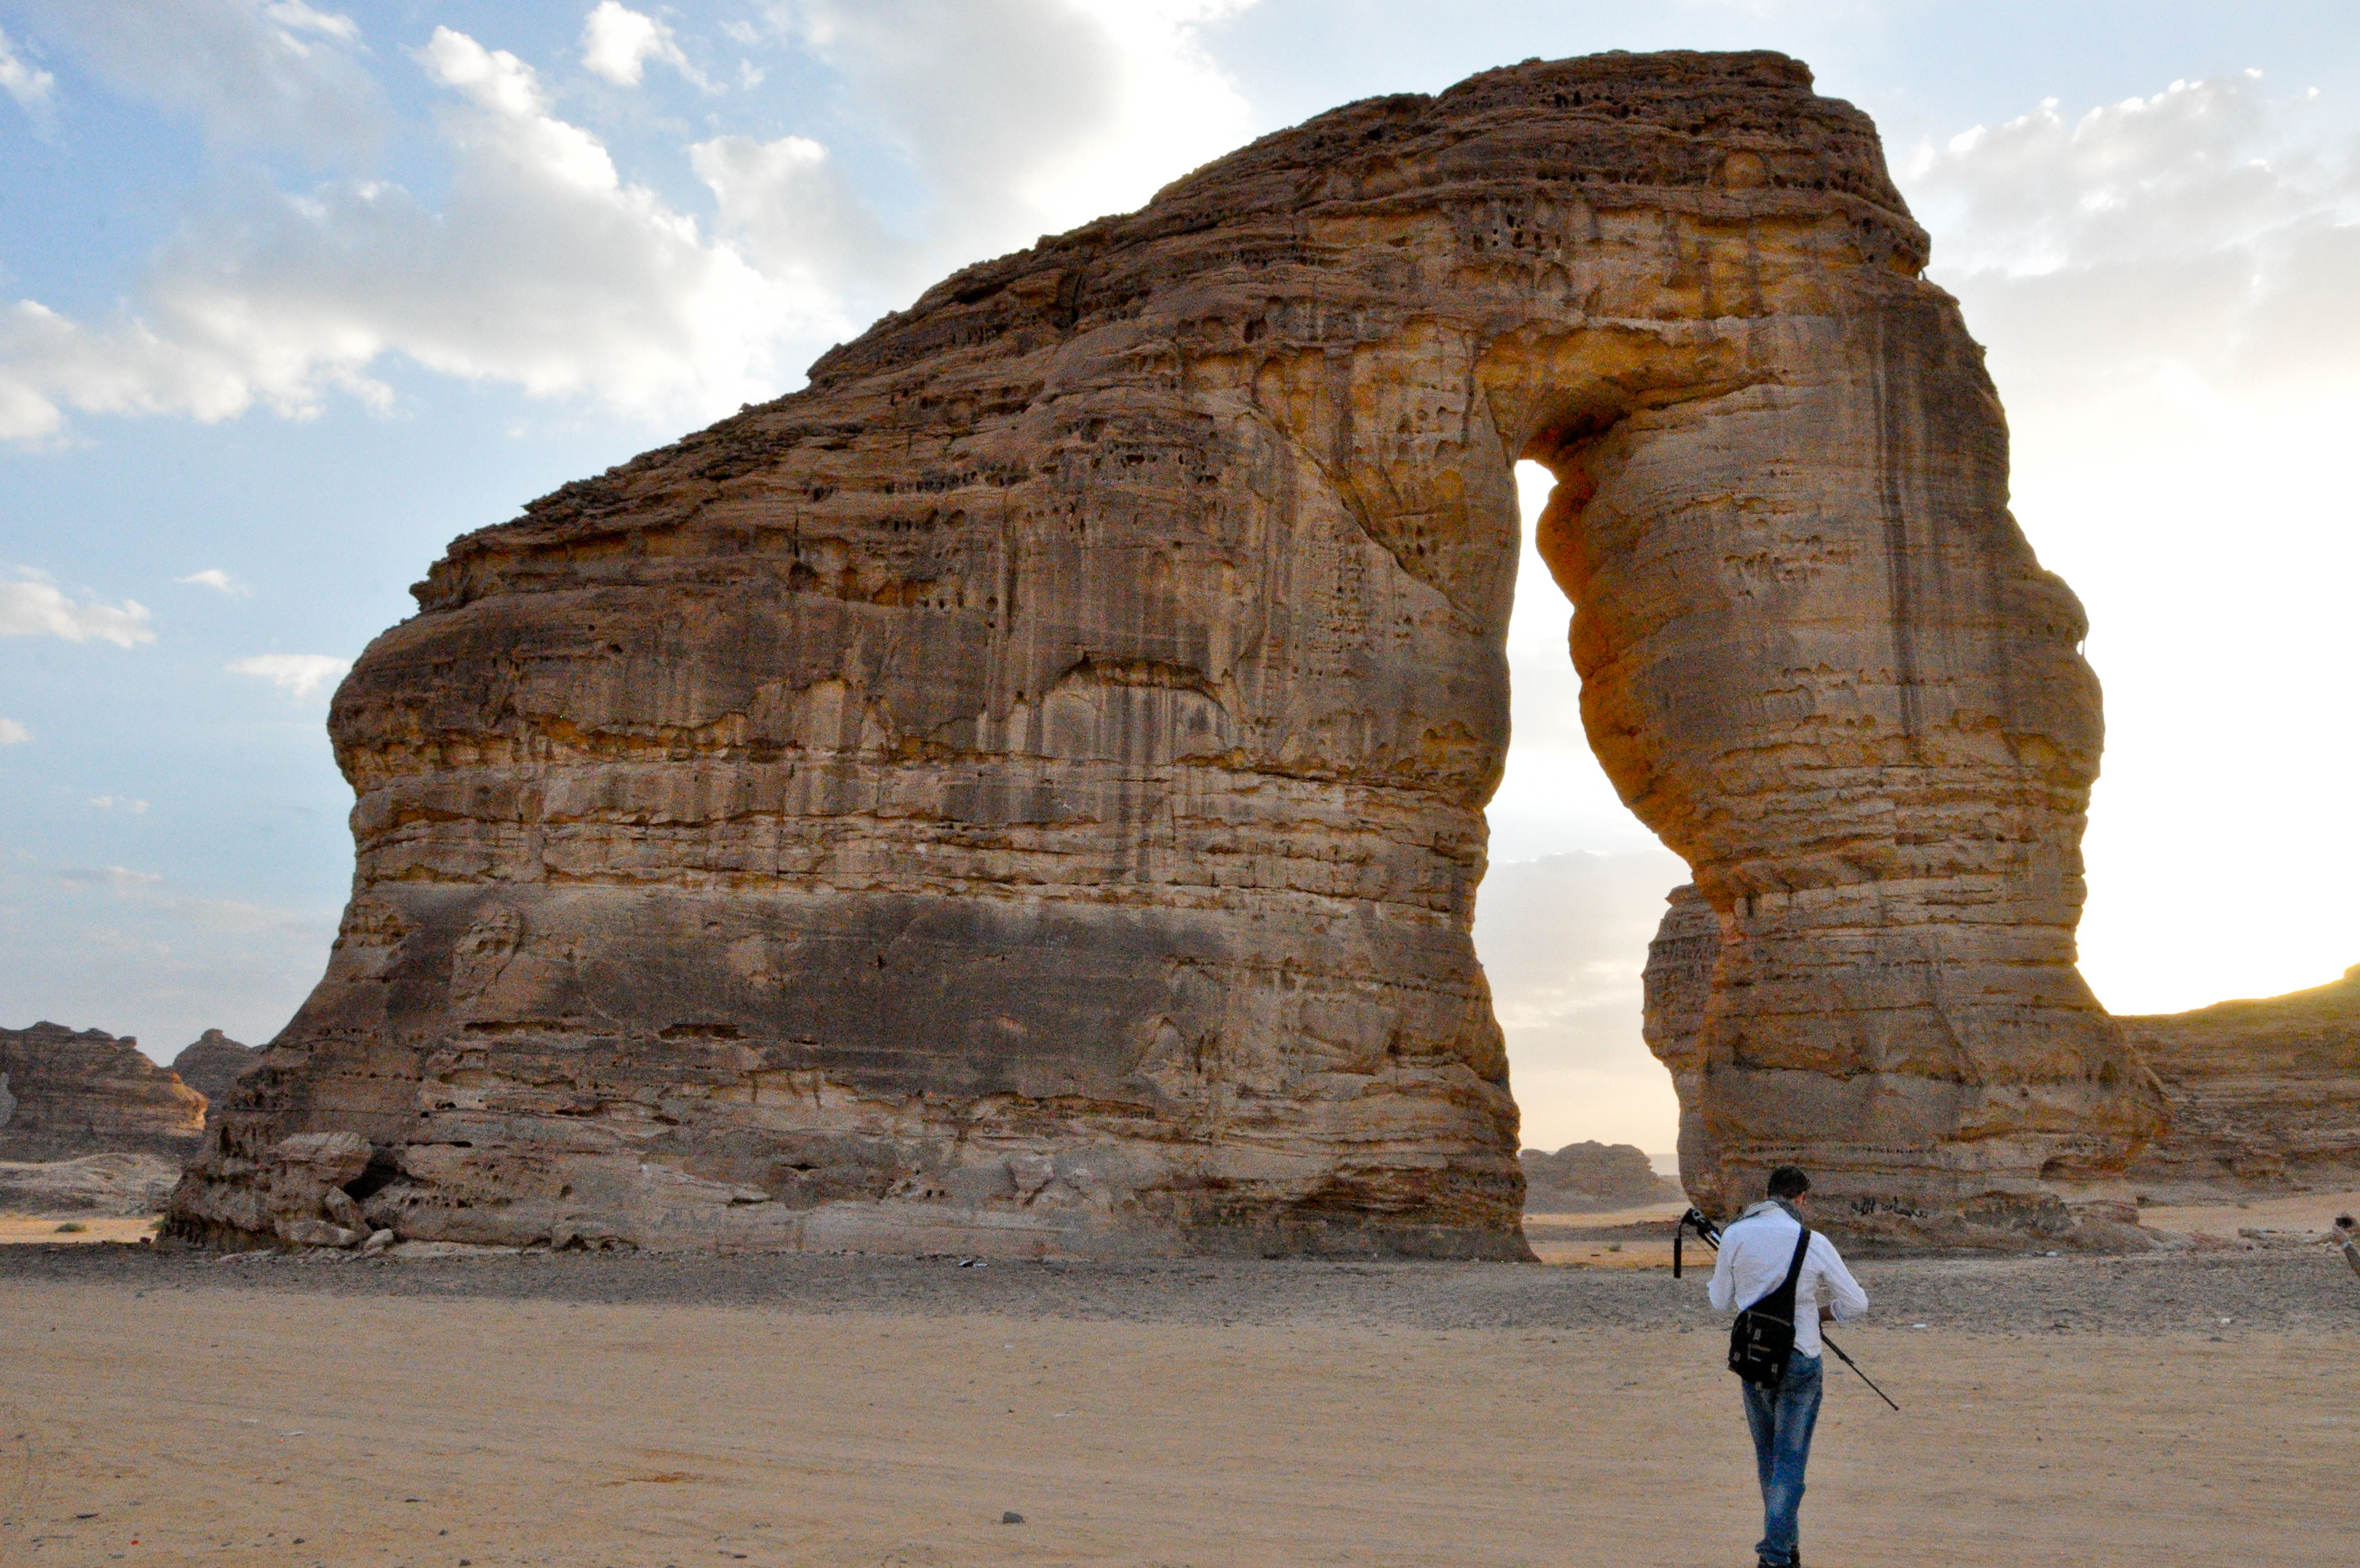 Elephant Rock is located 7 km East of Al-Ula. It is a huge natural rock formatio